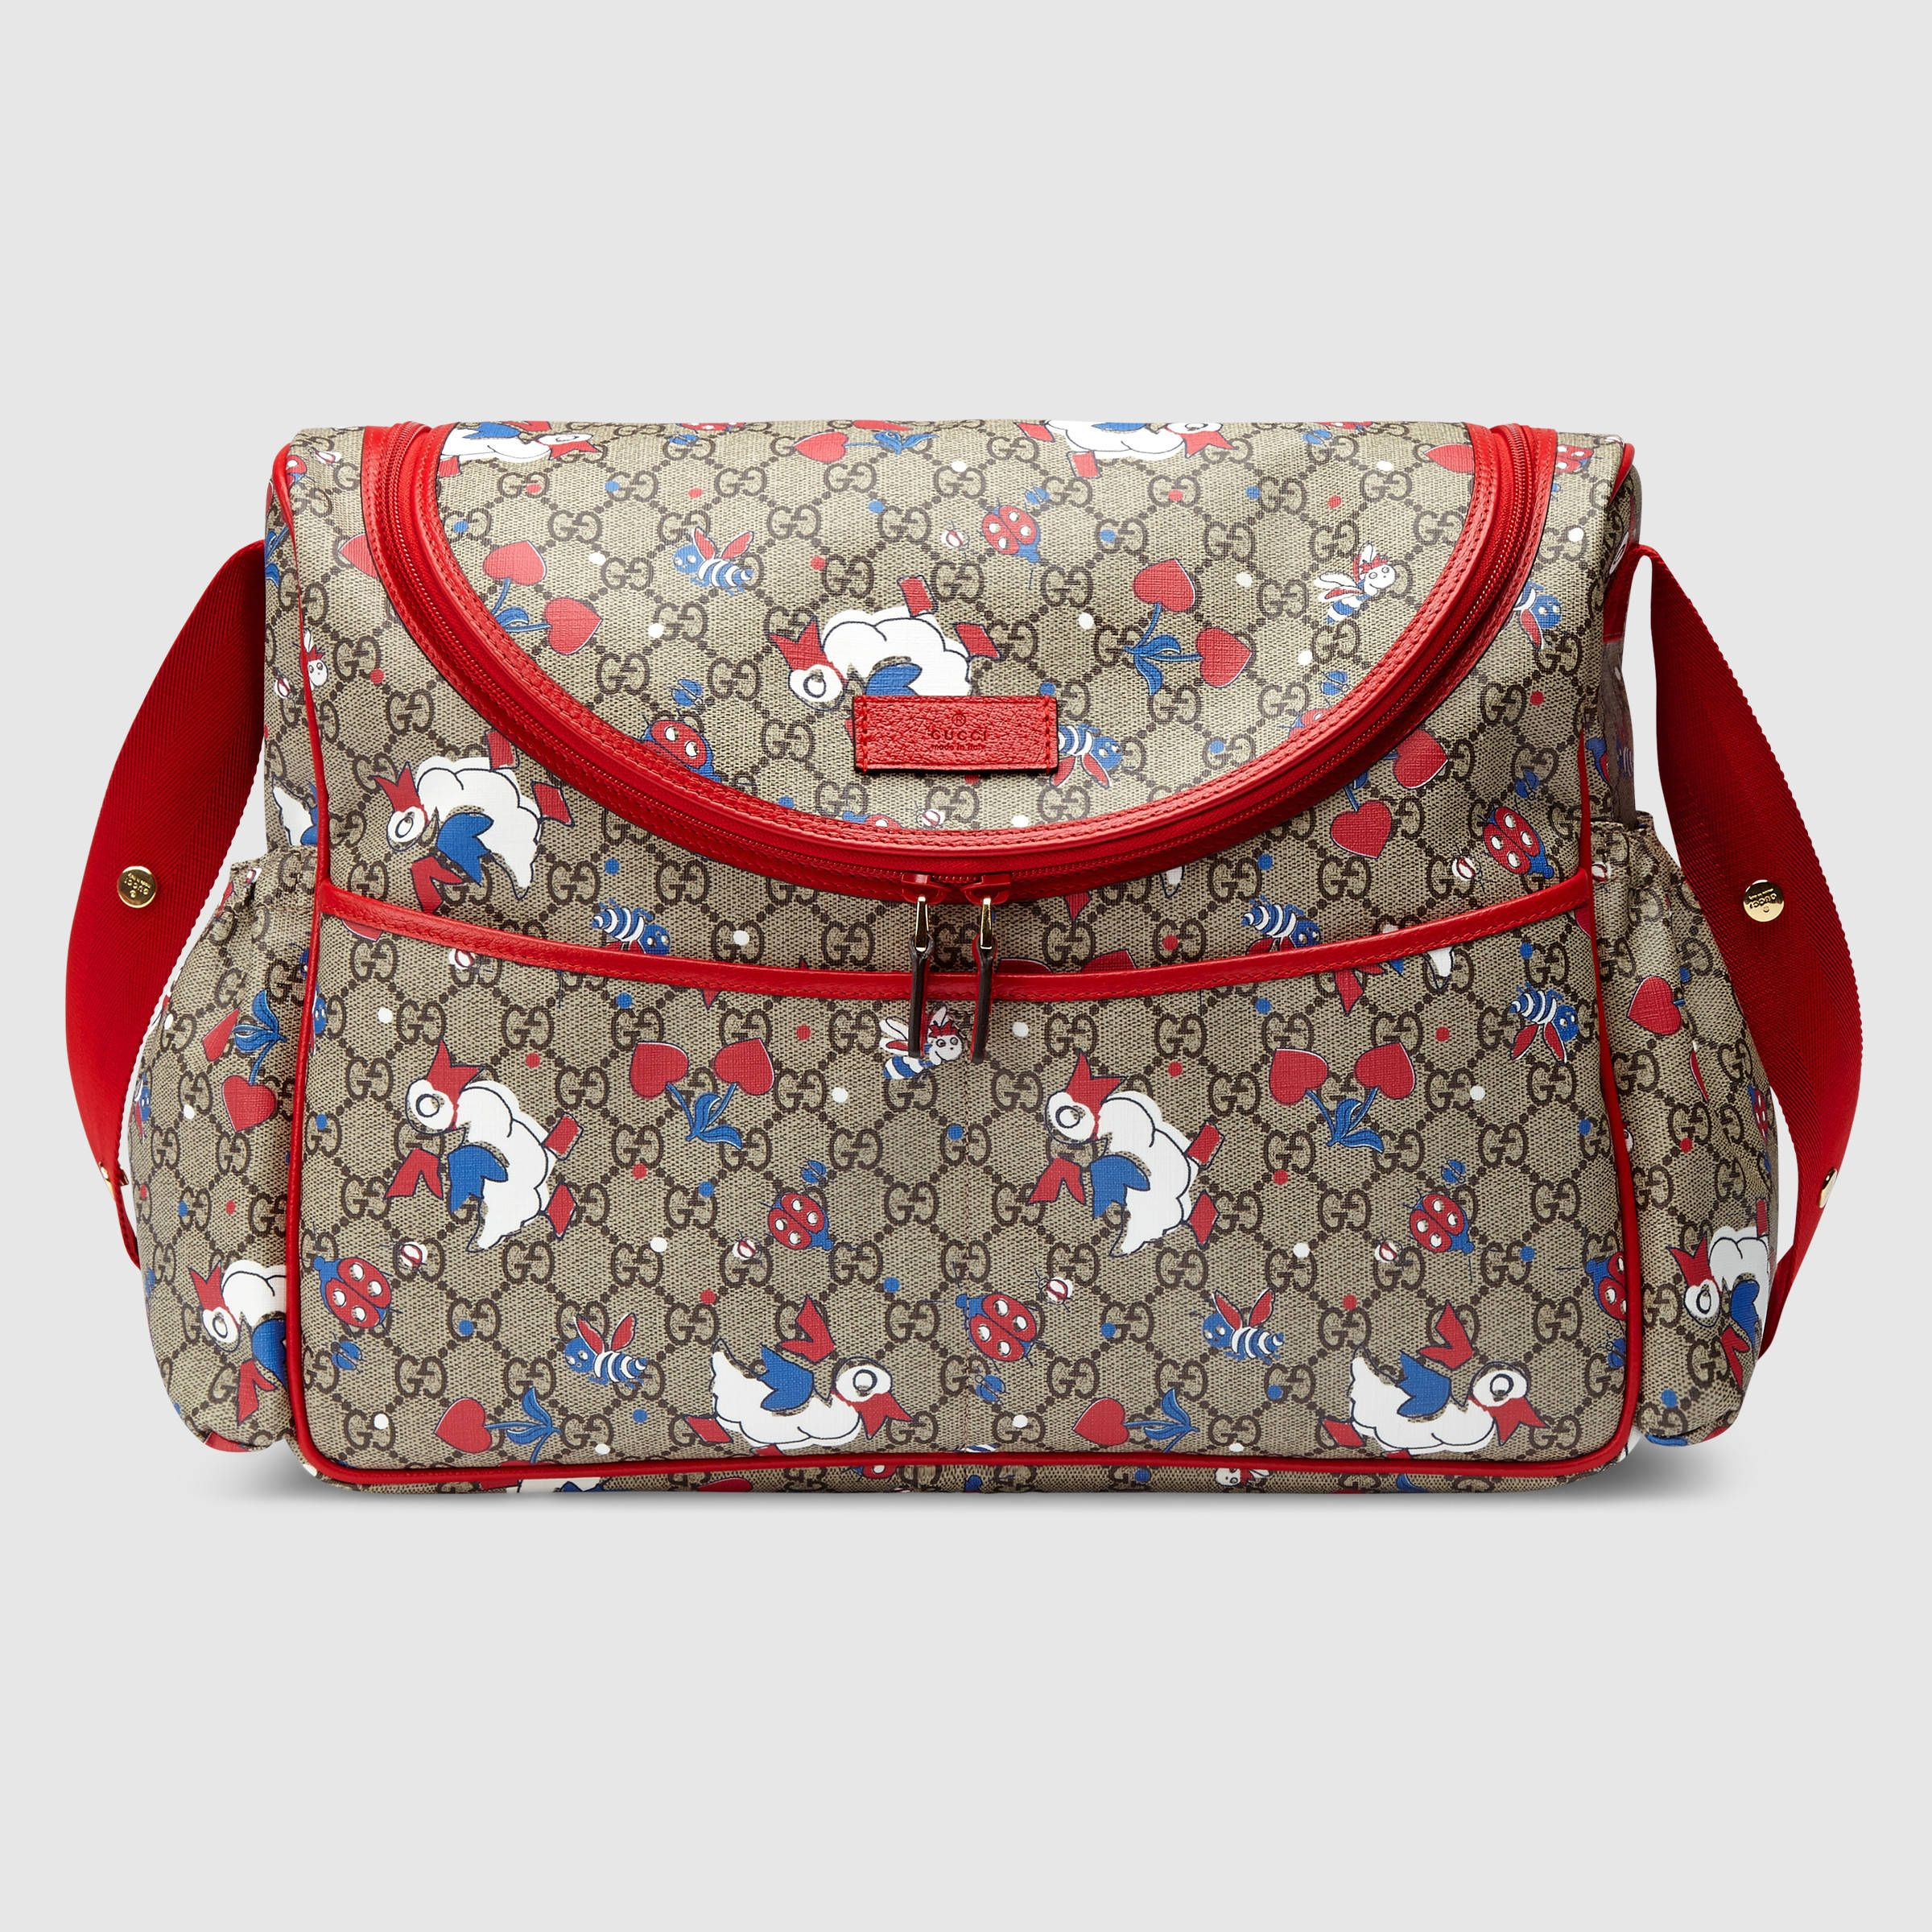 312de30c929 GG ducks diaper bag - Gucci Diaper Bags   Totes 123326K9E4G9291